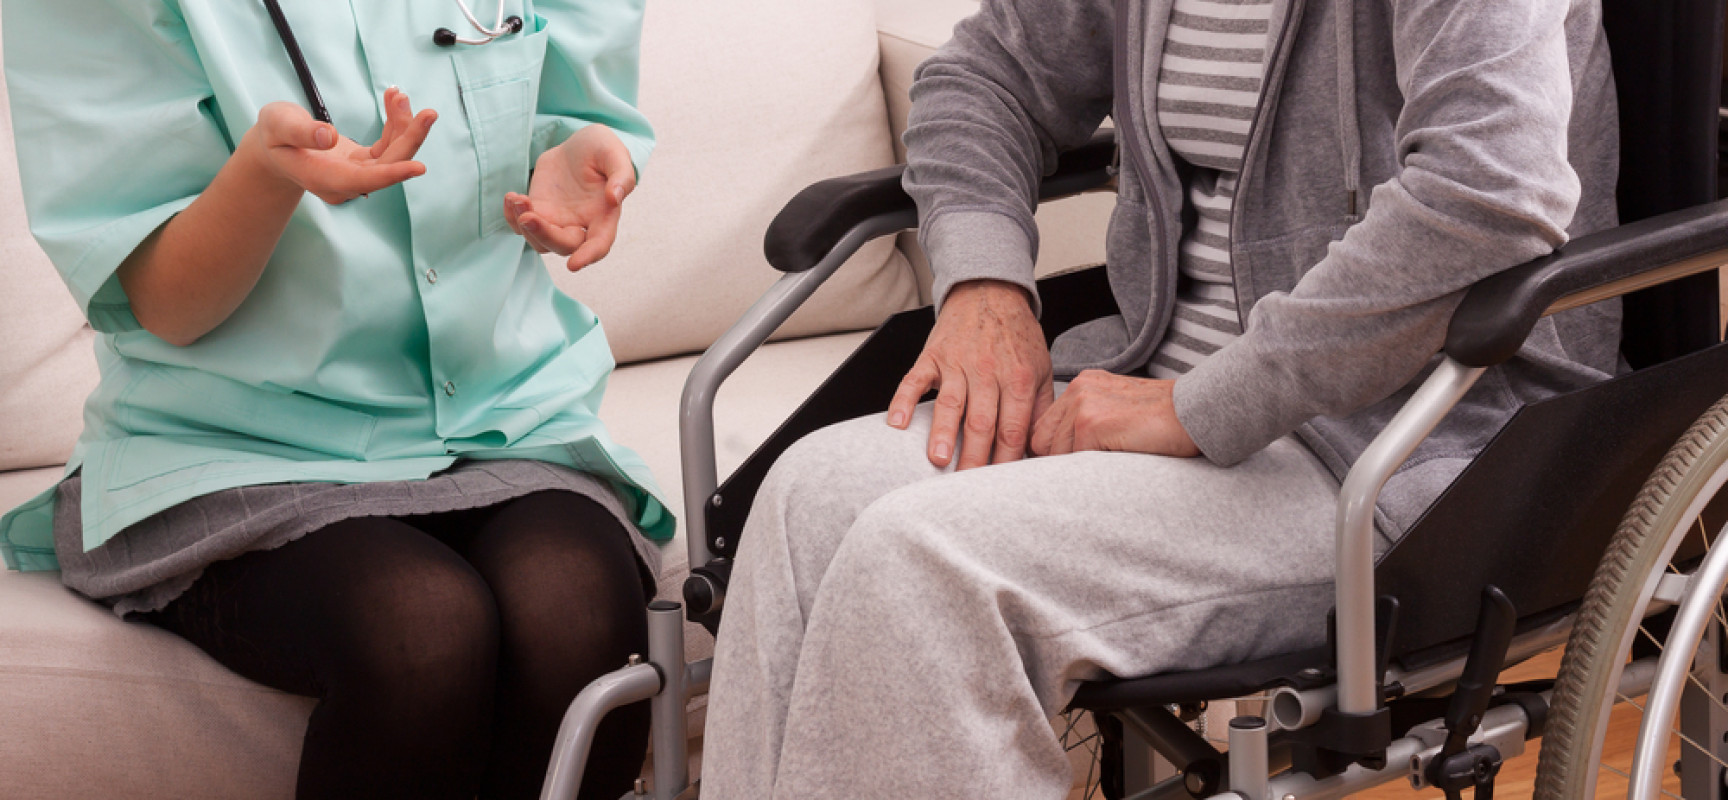 Mobility Aids for the Elderly for use in the Home